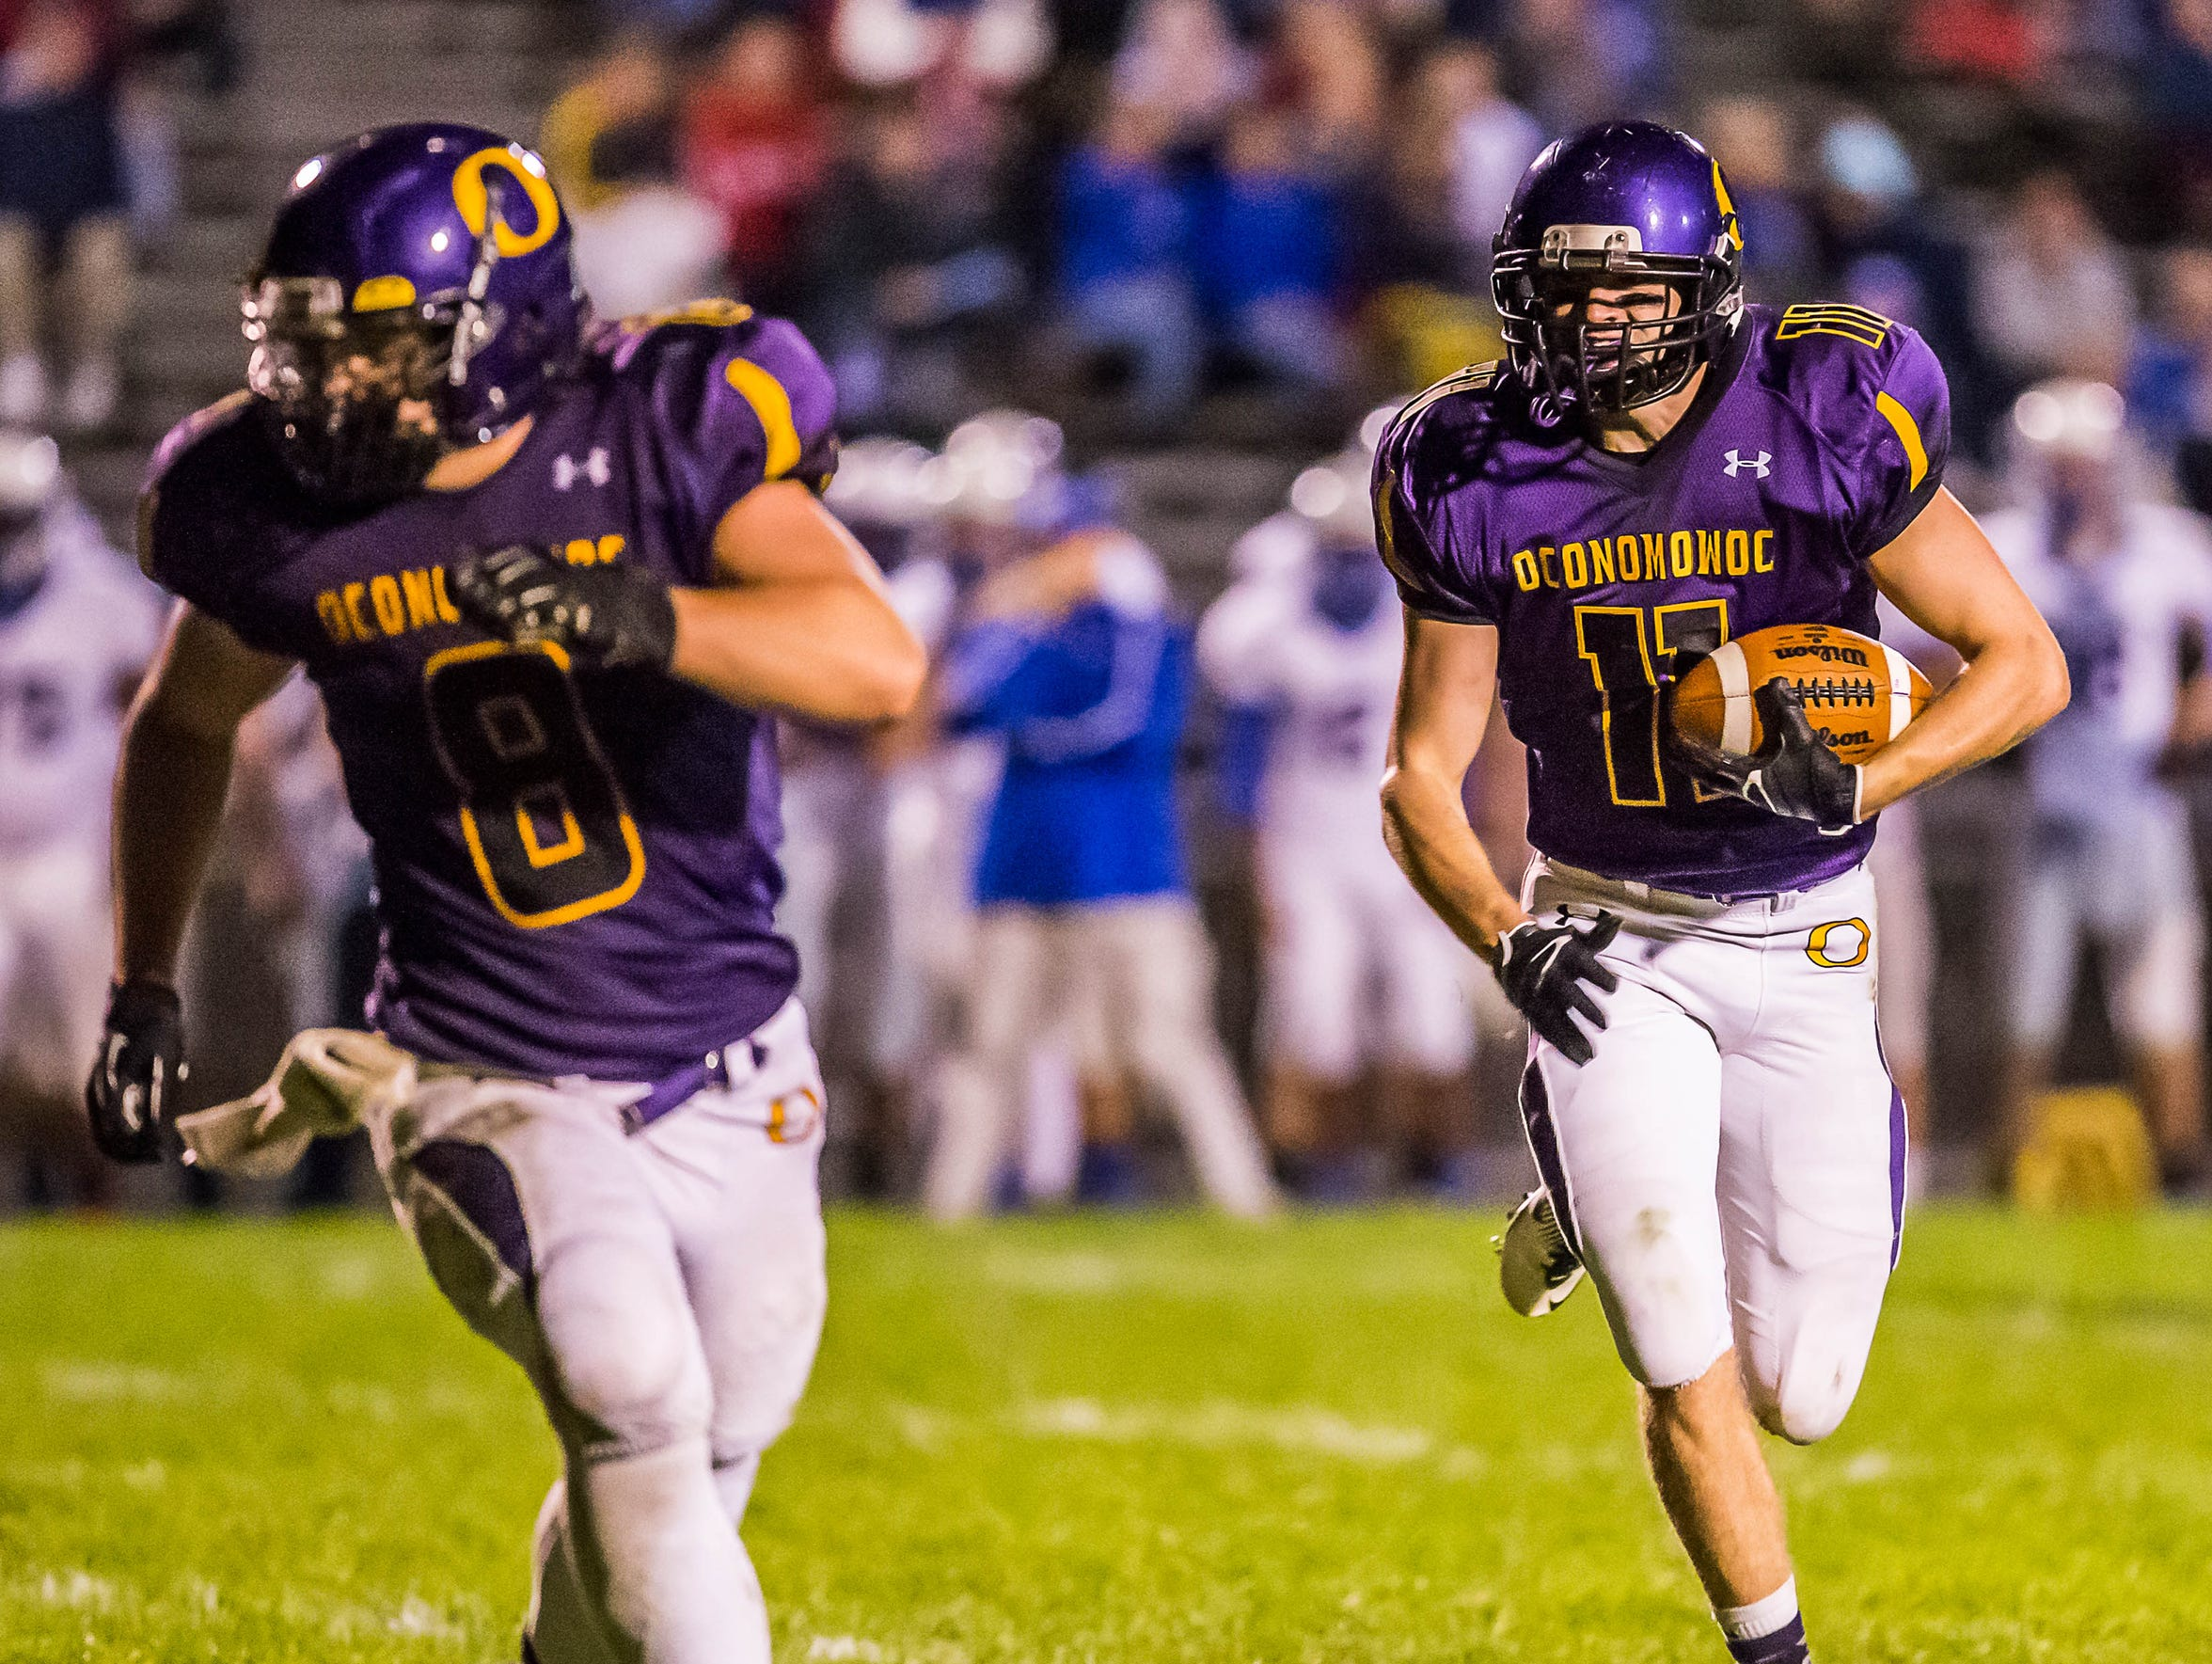 Oconomowoc senior Nate Nord (11) follows teammate Nick